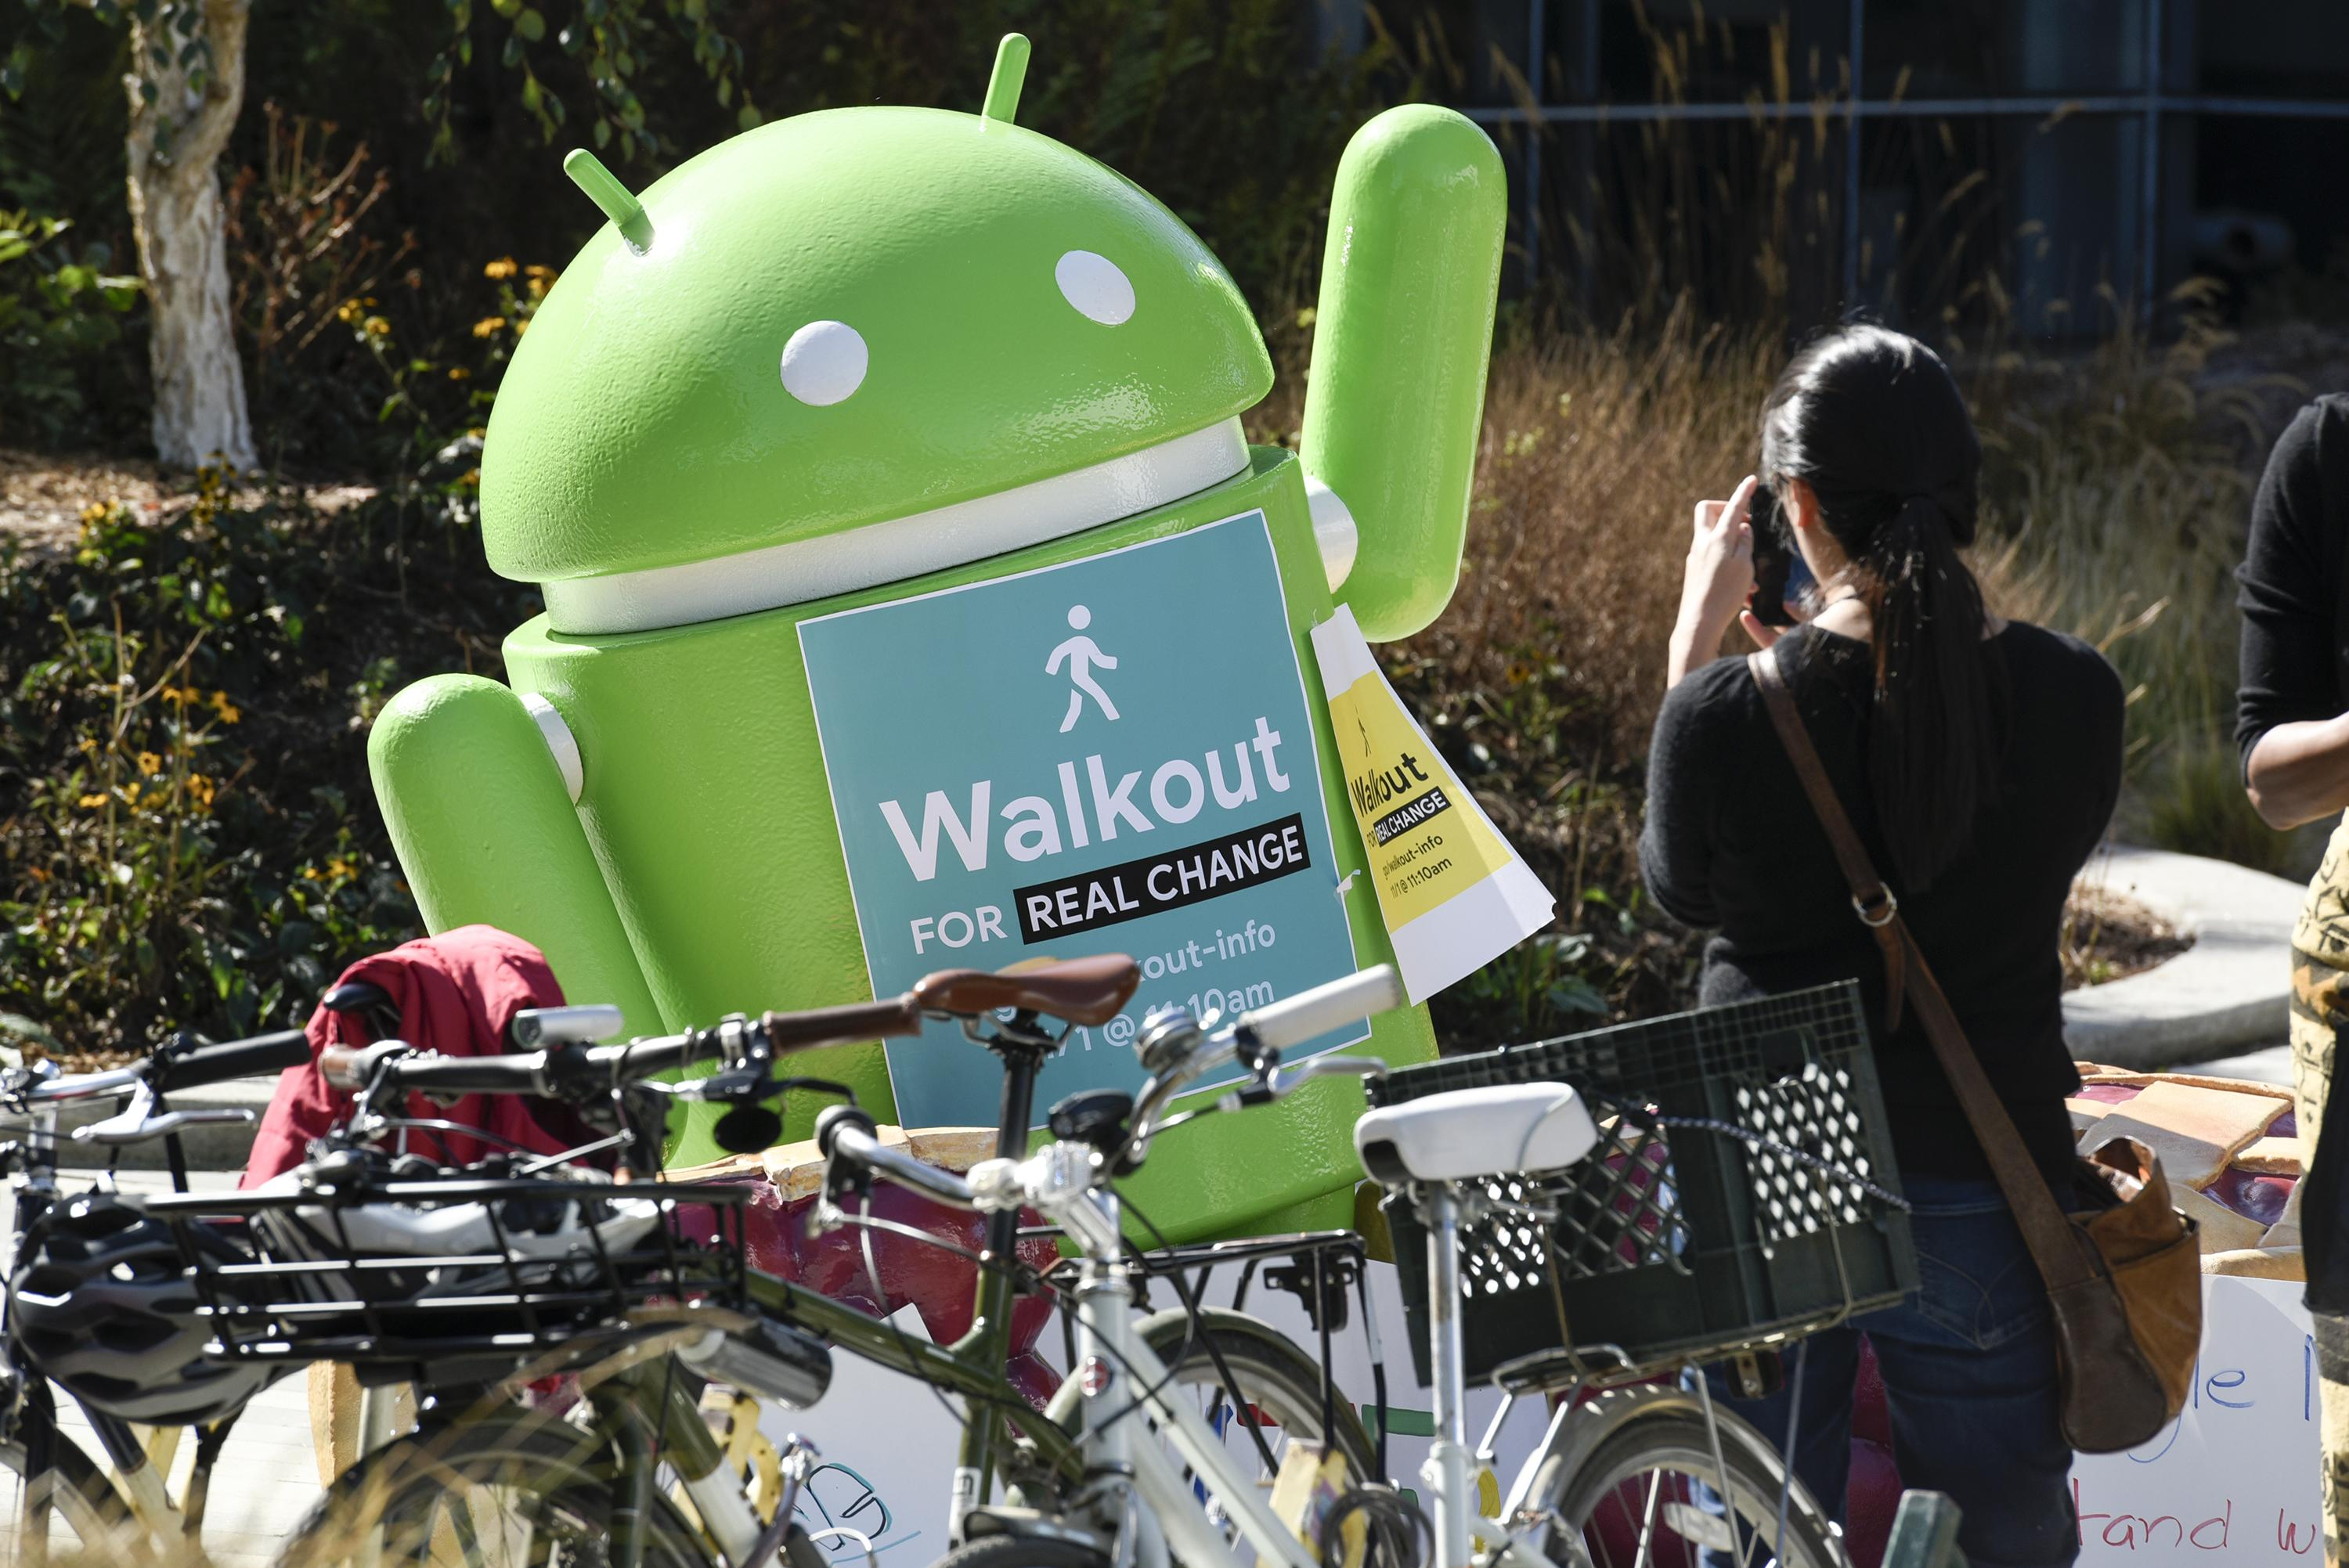 """<p>A person takes a photograph of an Android statue displaying a sign that reads """"Walkout For Real Change"""" during a protest outside Google headquarters in Mountain View, Calif., on Thursday, Nov. 1, 2018. (Photo: Michael Short/Bloomberg via Getty Images </p>"""